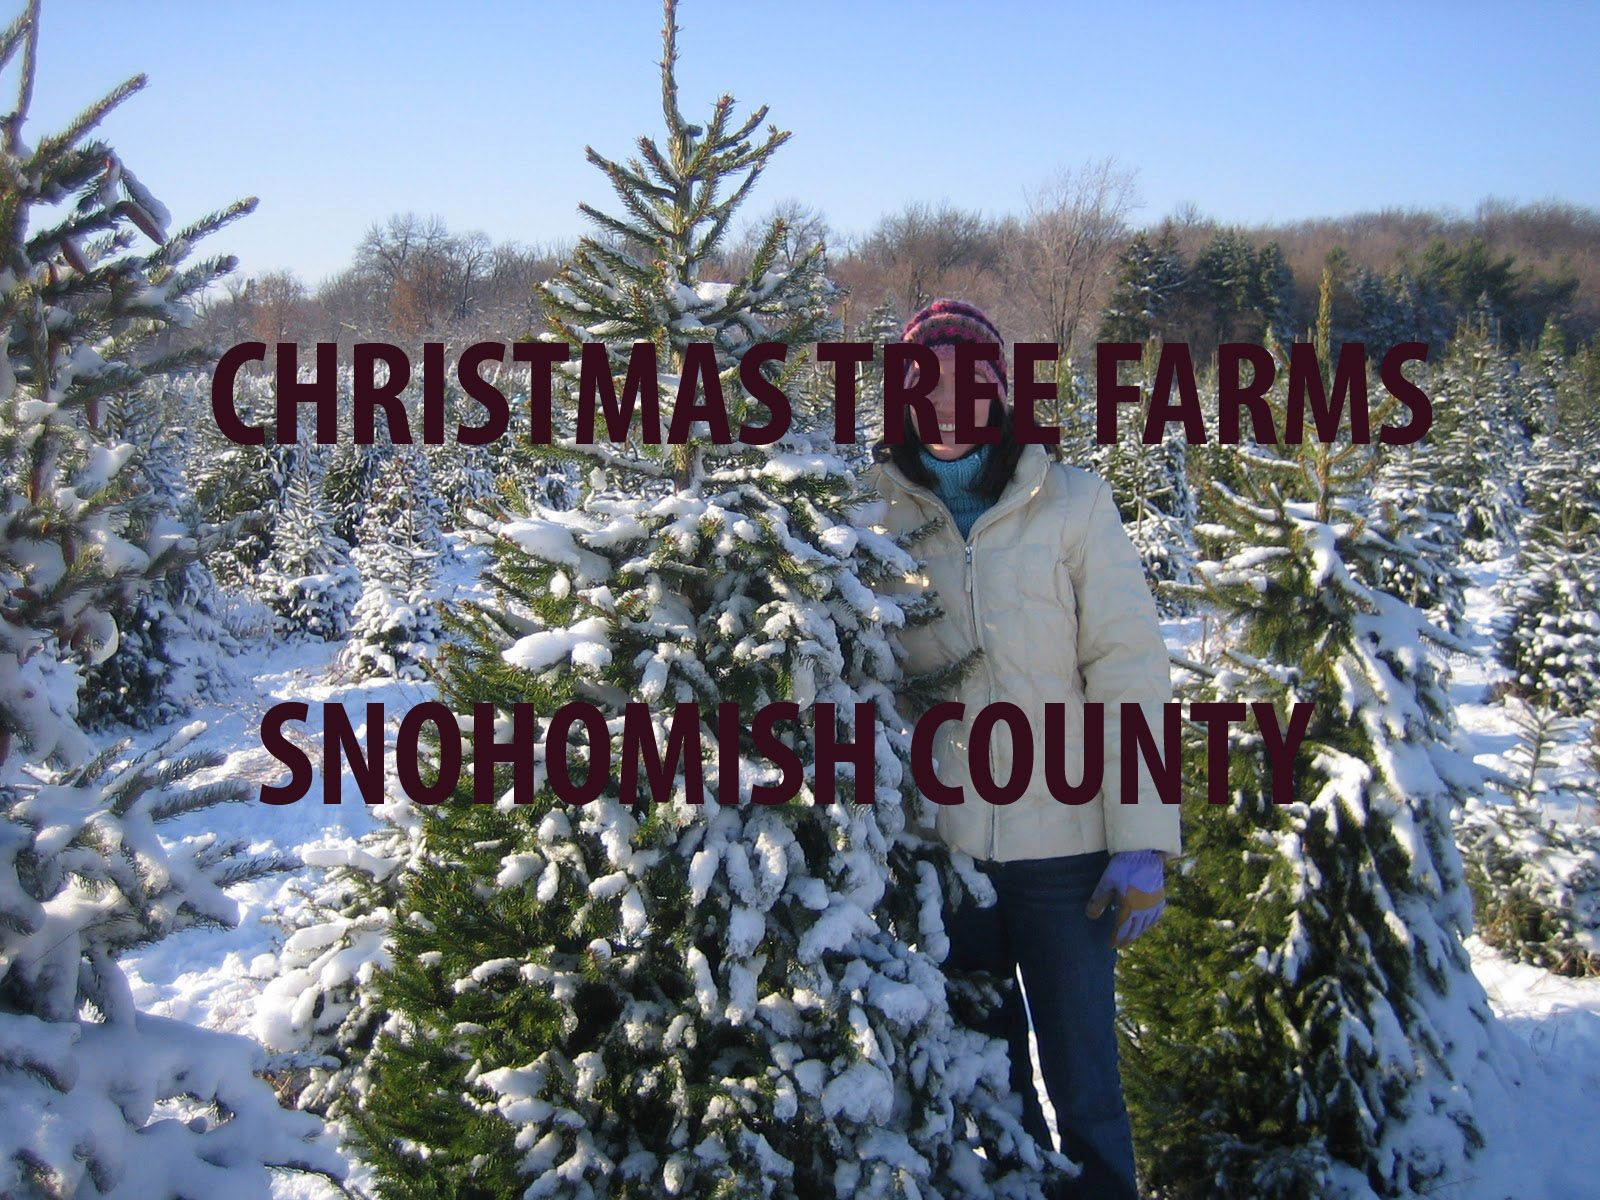 Christmas Tree Farms In Snohomish County Http Www Snohomish Org Misc Christmas Tree Farms Christmas Tree Farm Tree Farms Christmas Tree